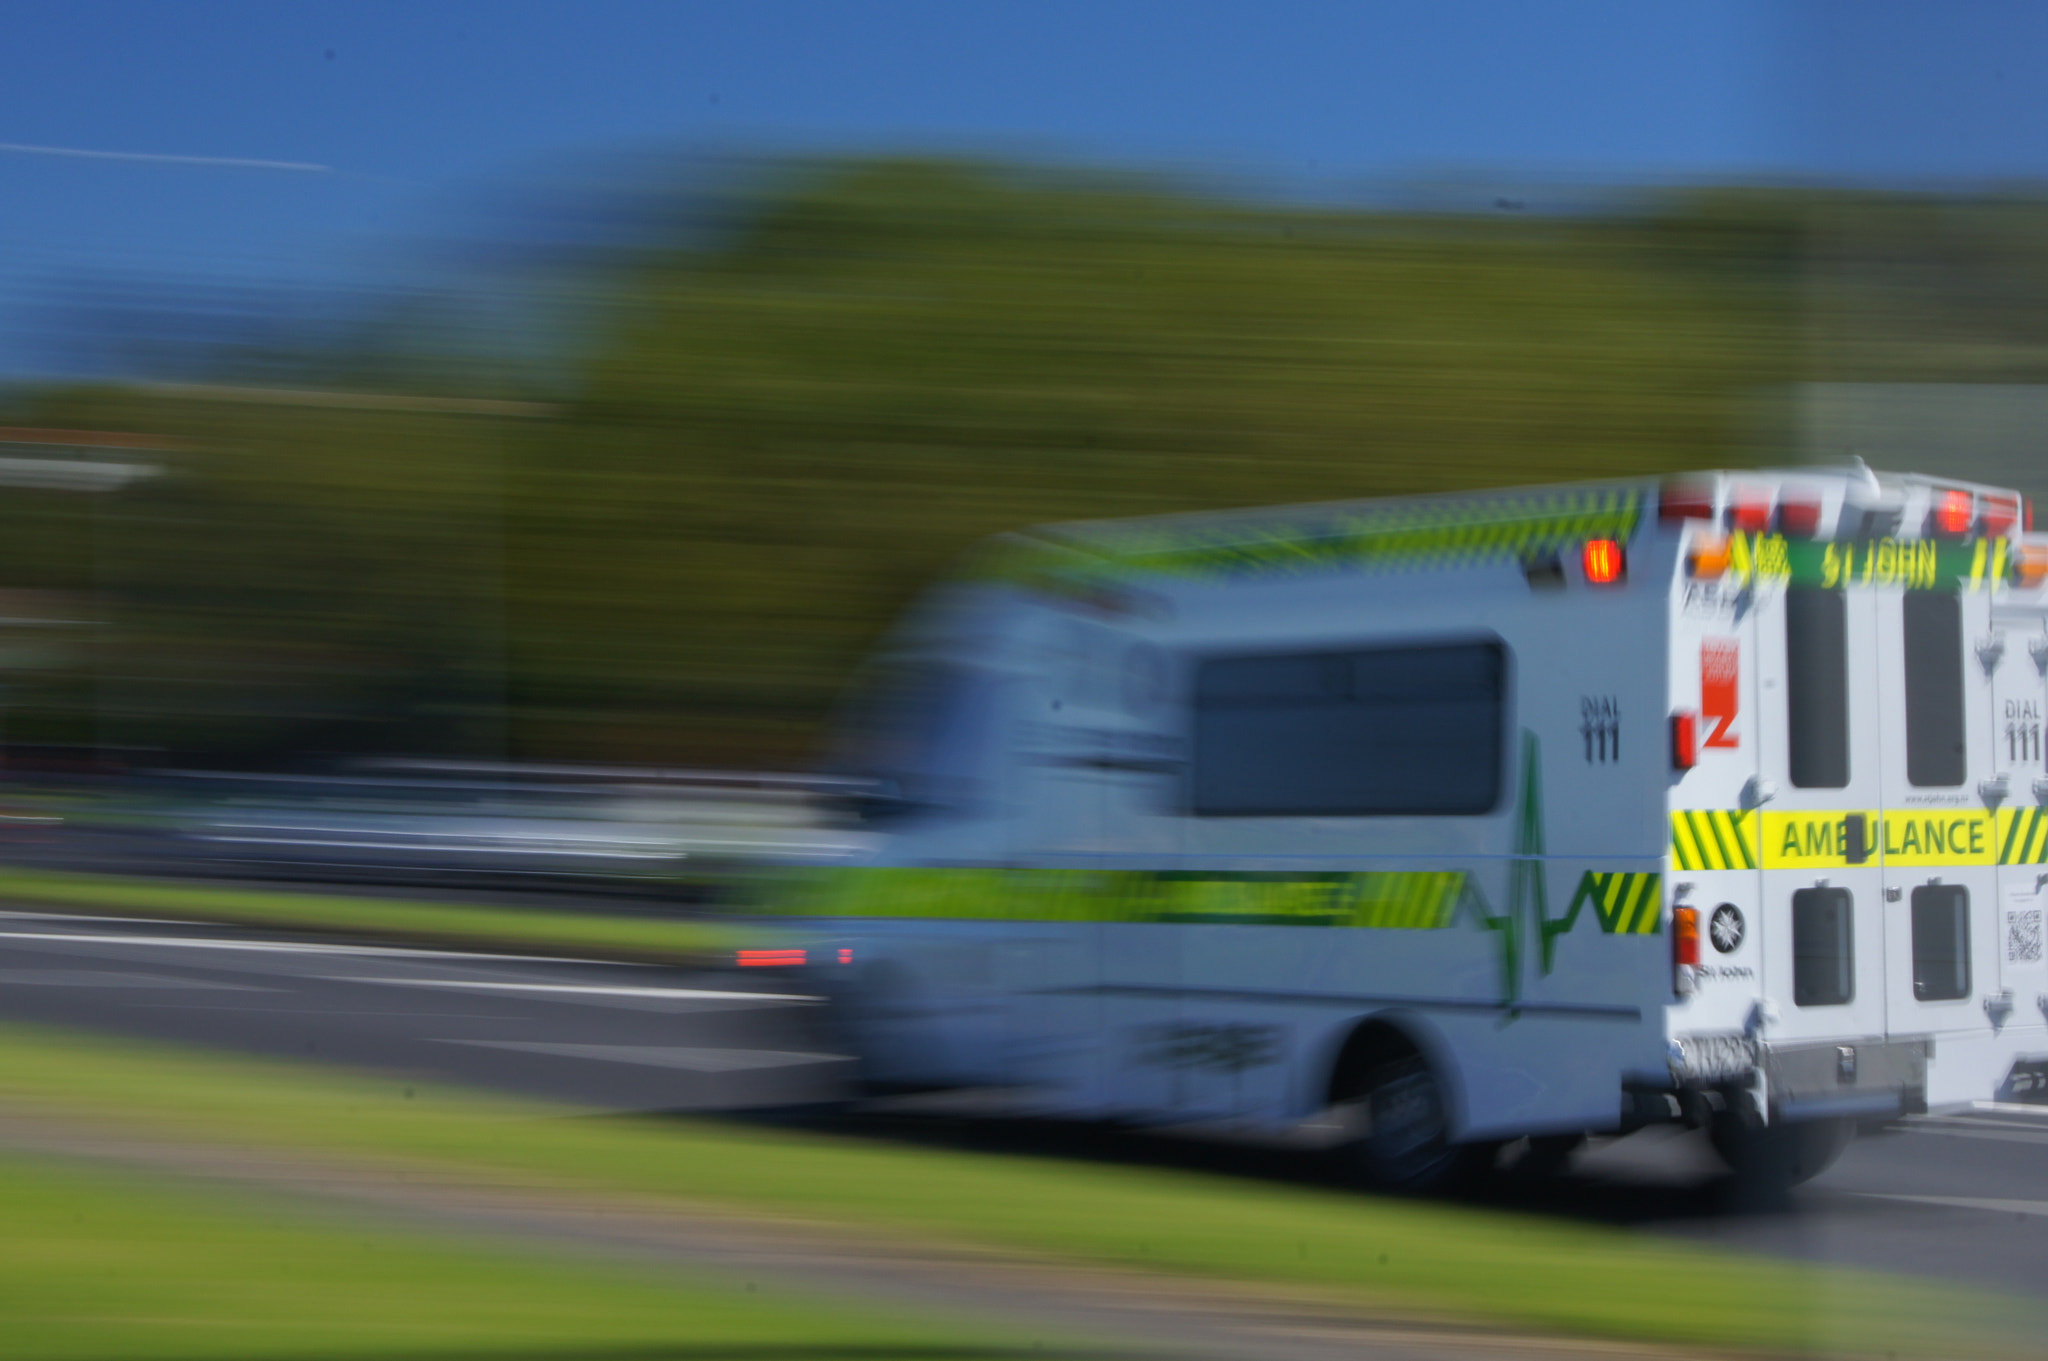 Photograph Ambulance at speed by Keran McKenzie on 500px